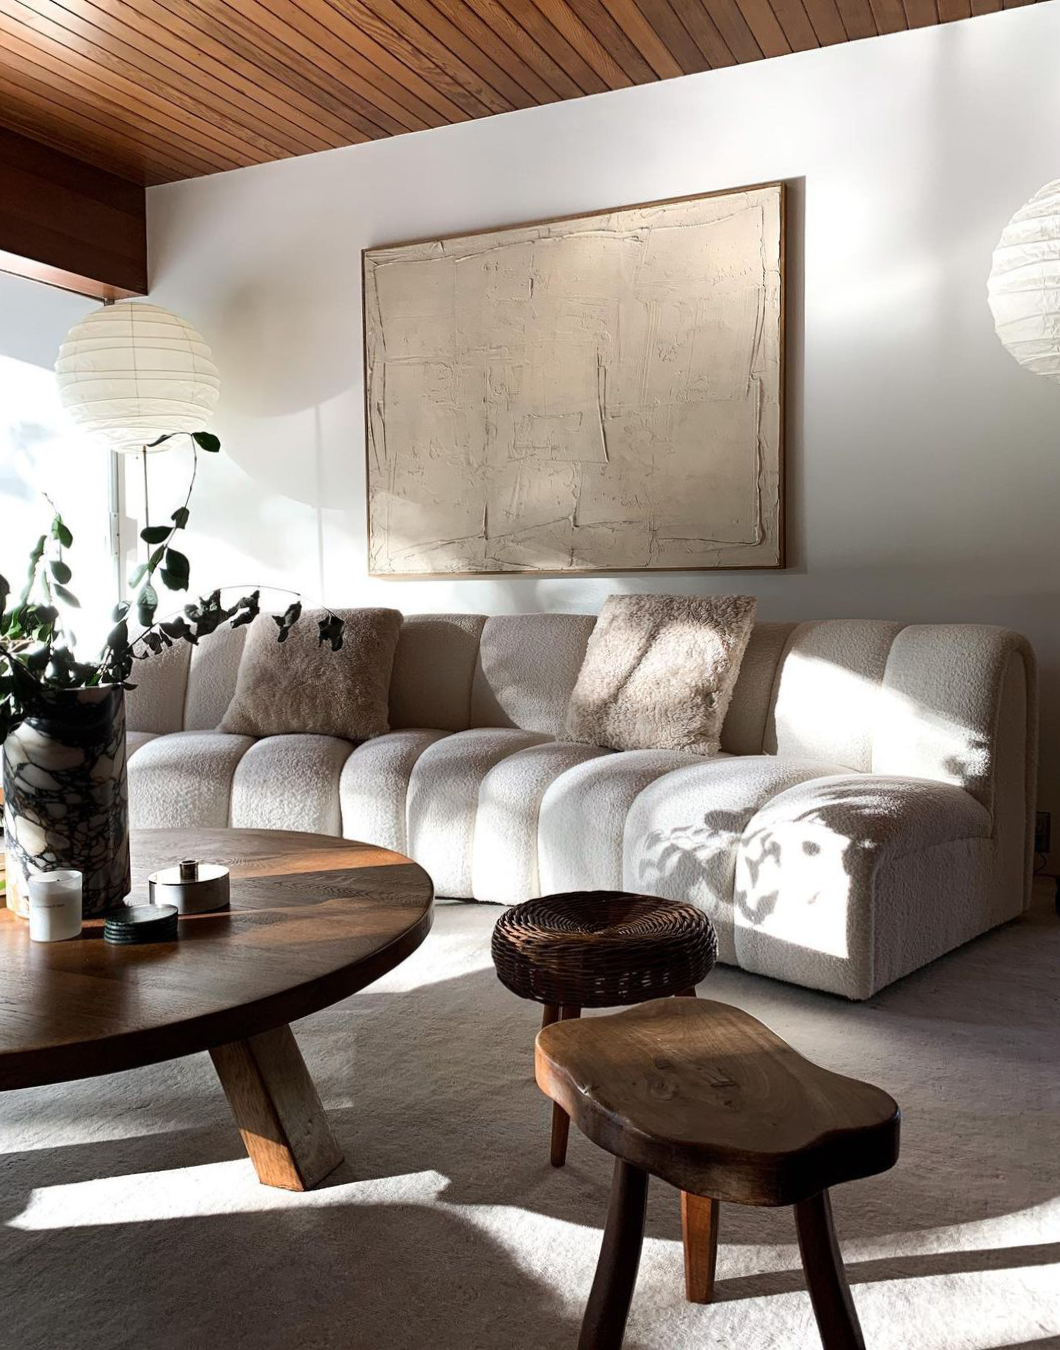 The Grand rug in Dusty White in the beautiful and modern living room of Elsa Hosk.